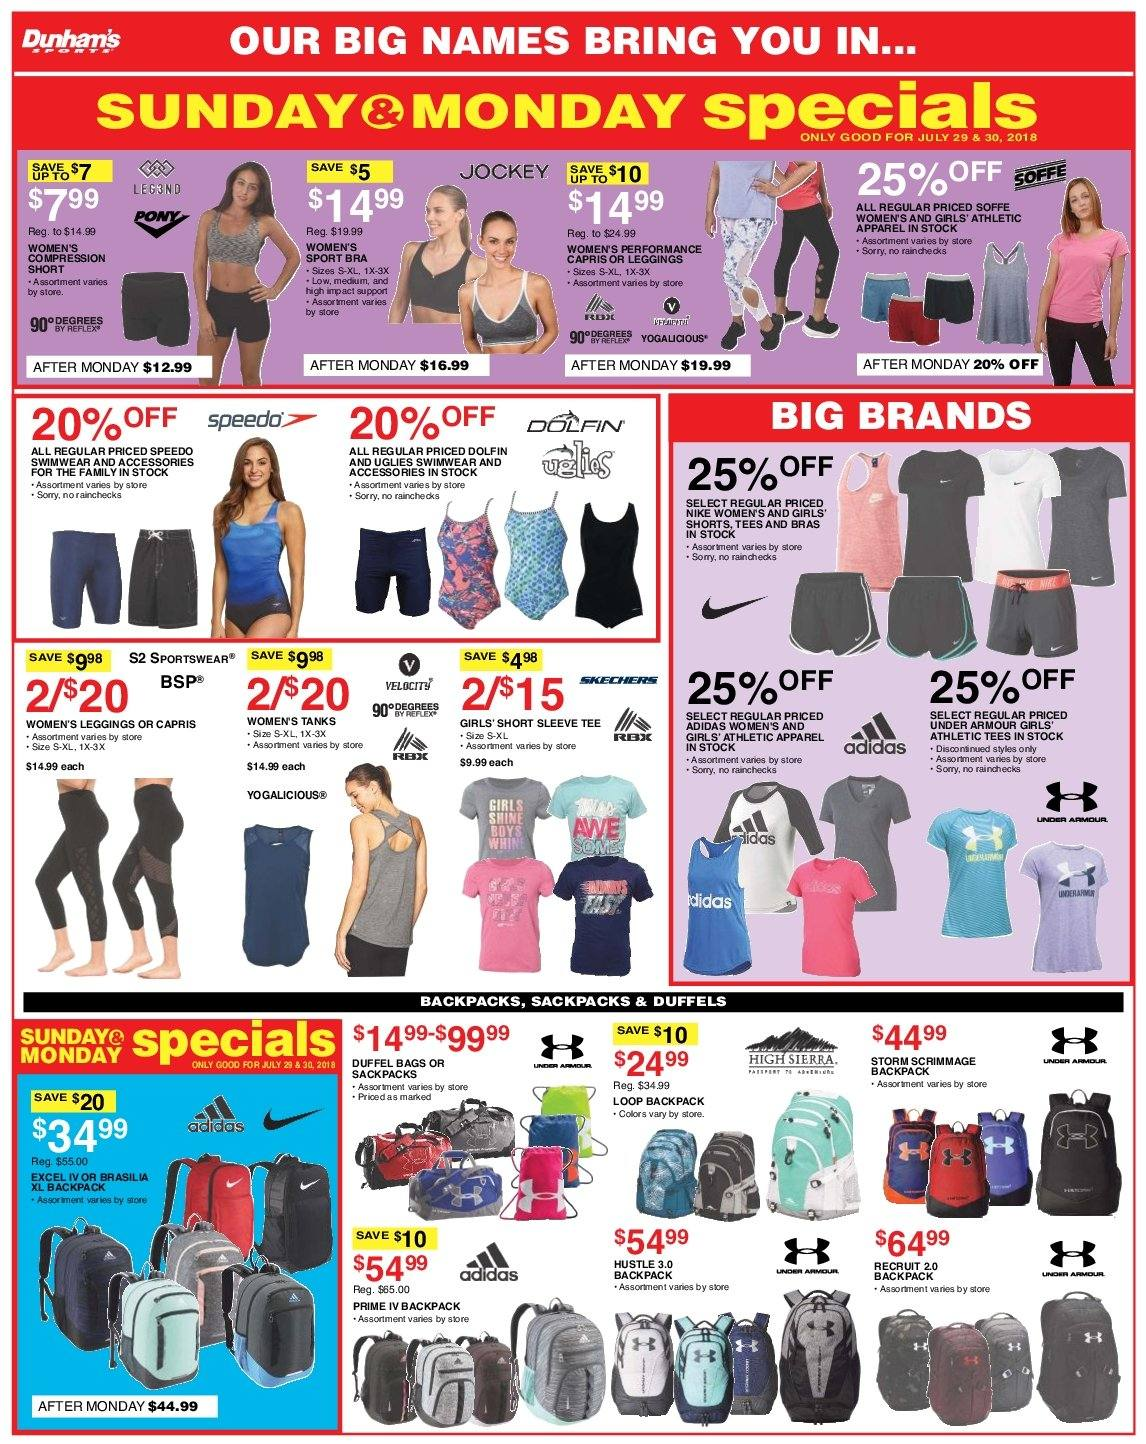 Dunham's Sports Flyer - 07.28.2018 - 08.02.2018 - Sales products - accessories, apparel, backpack, bag, bra, leggings, shorts, speedo, tee, under armour, nike. Page 4.